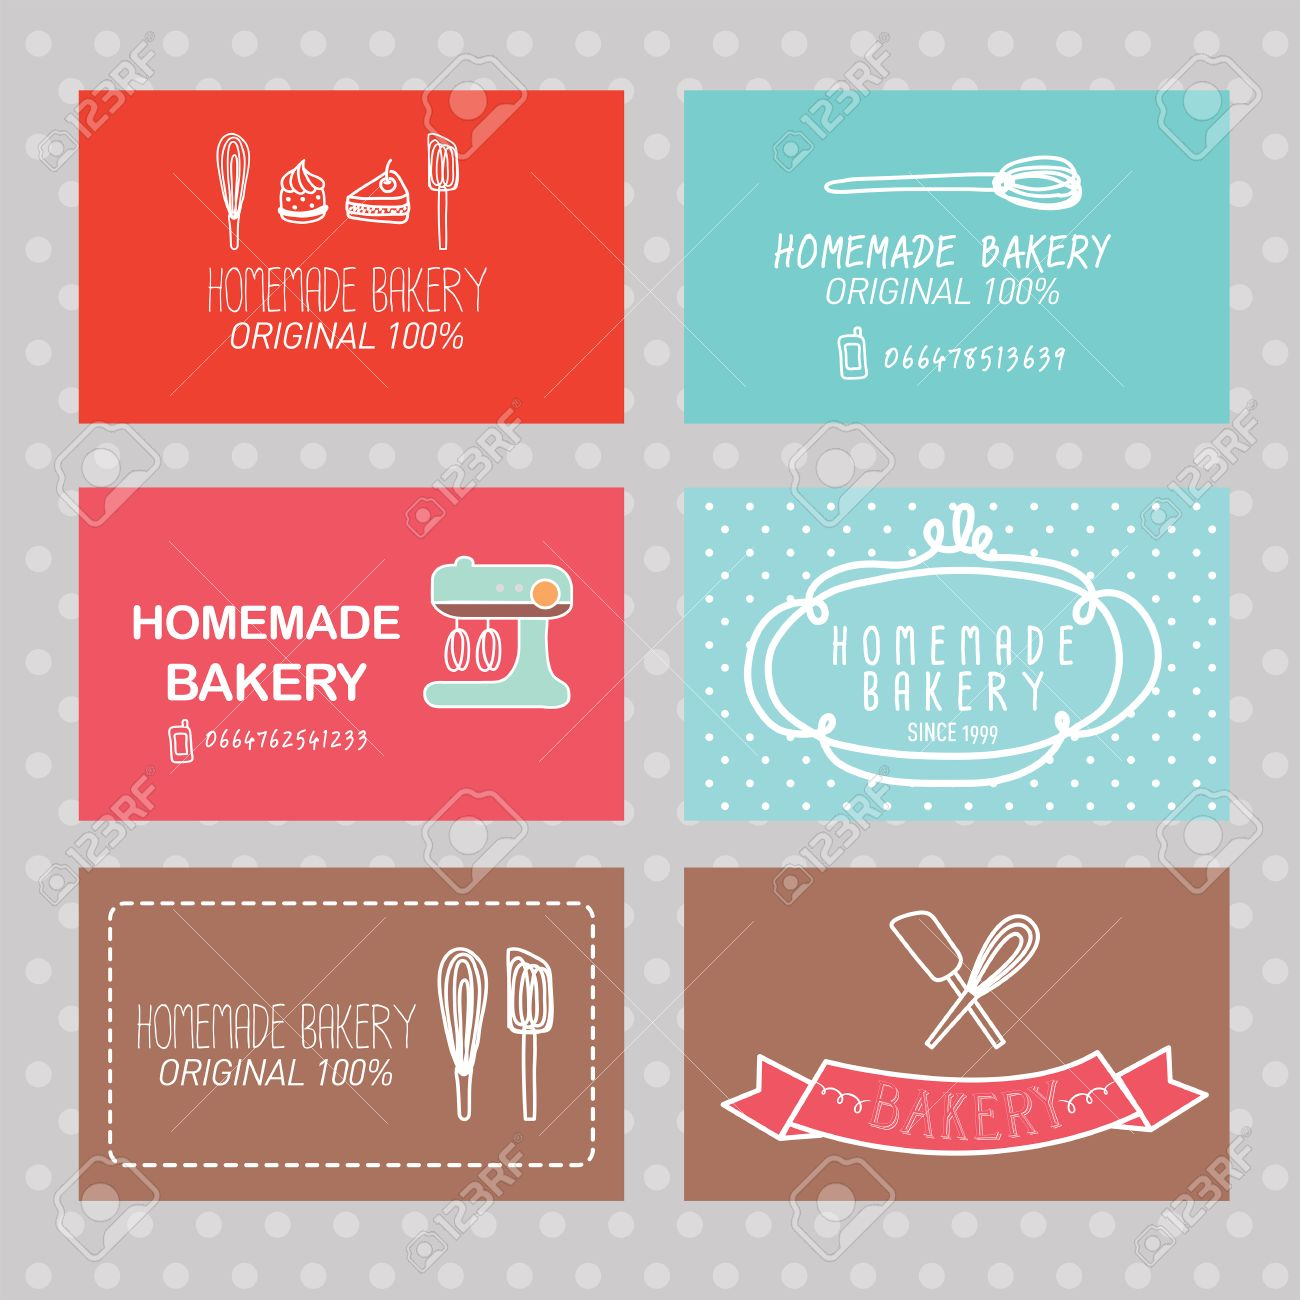 Bakery Business Card Royalty Free Cliparts Vectors And Stock